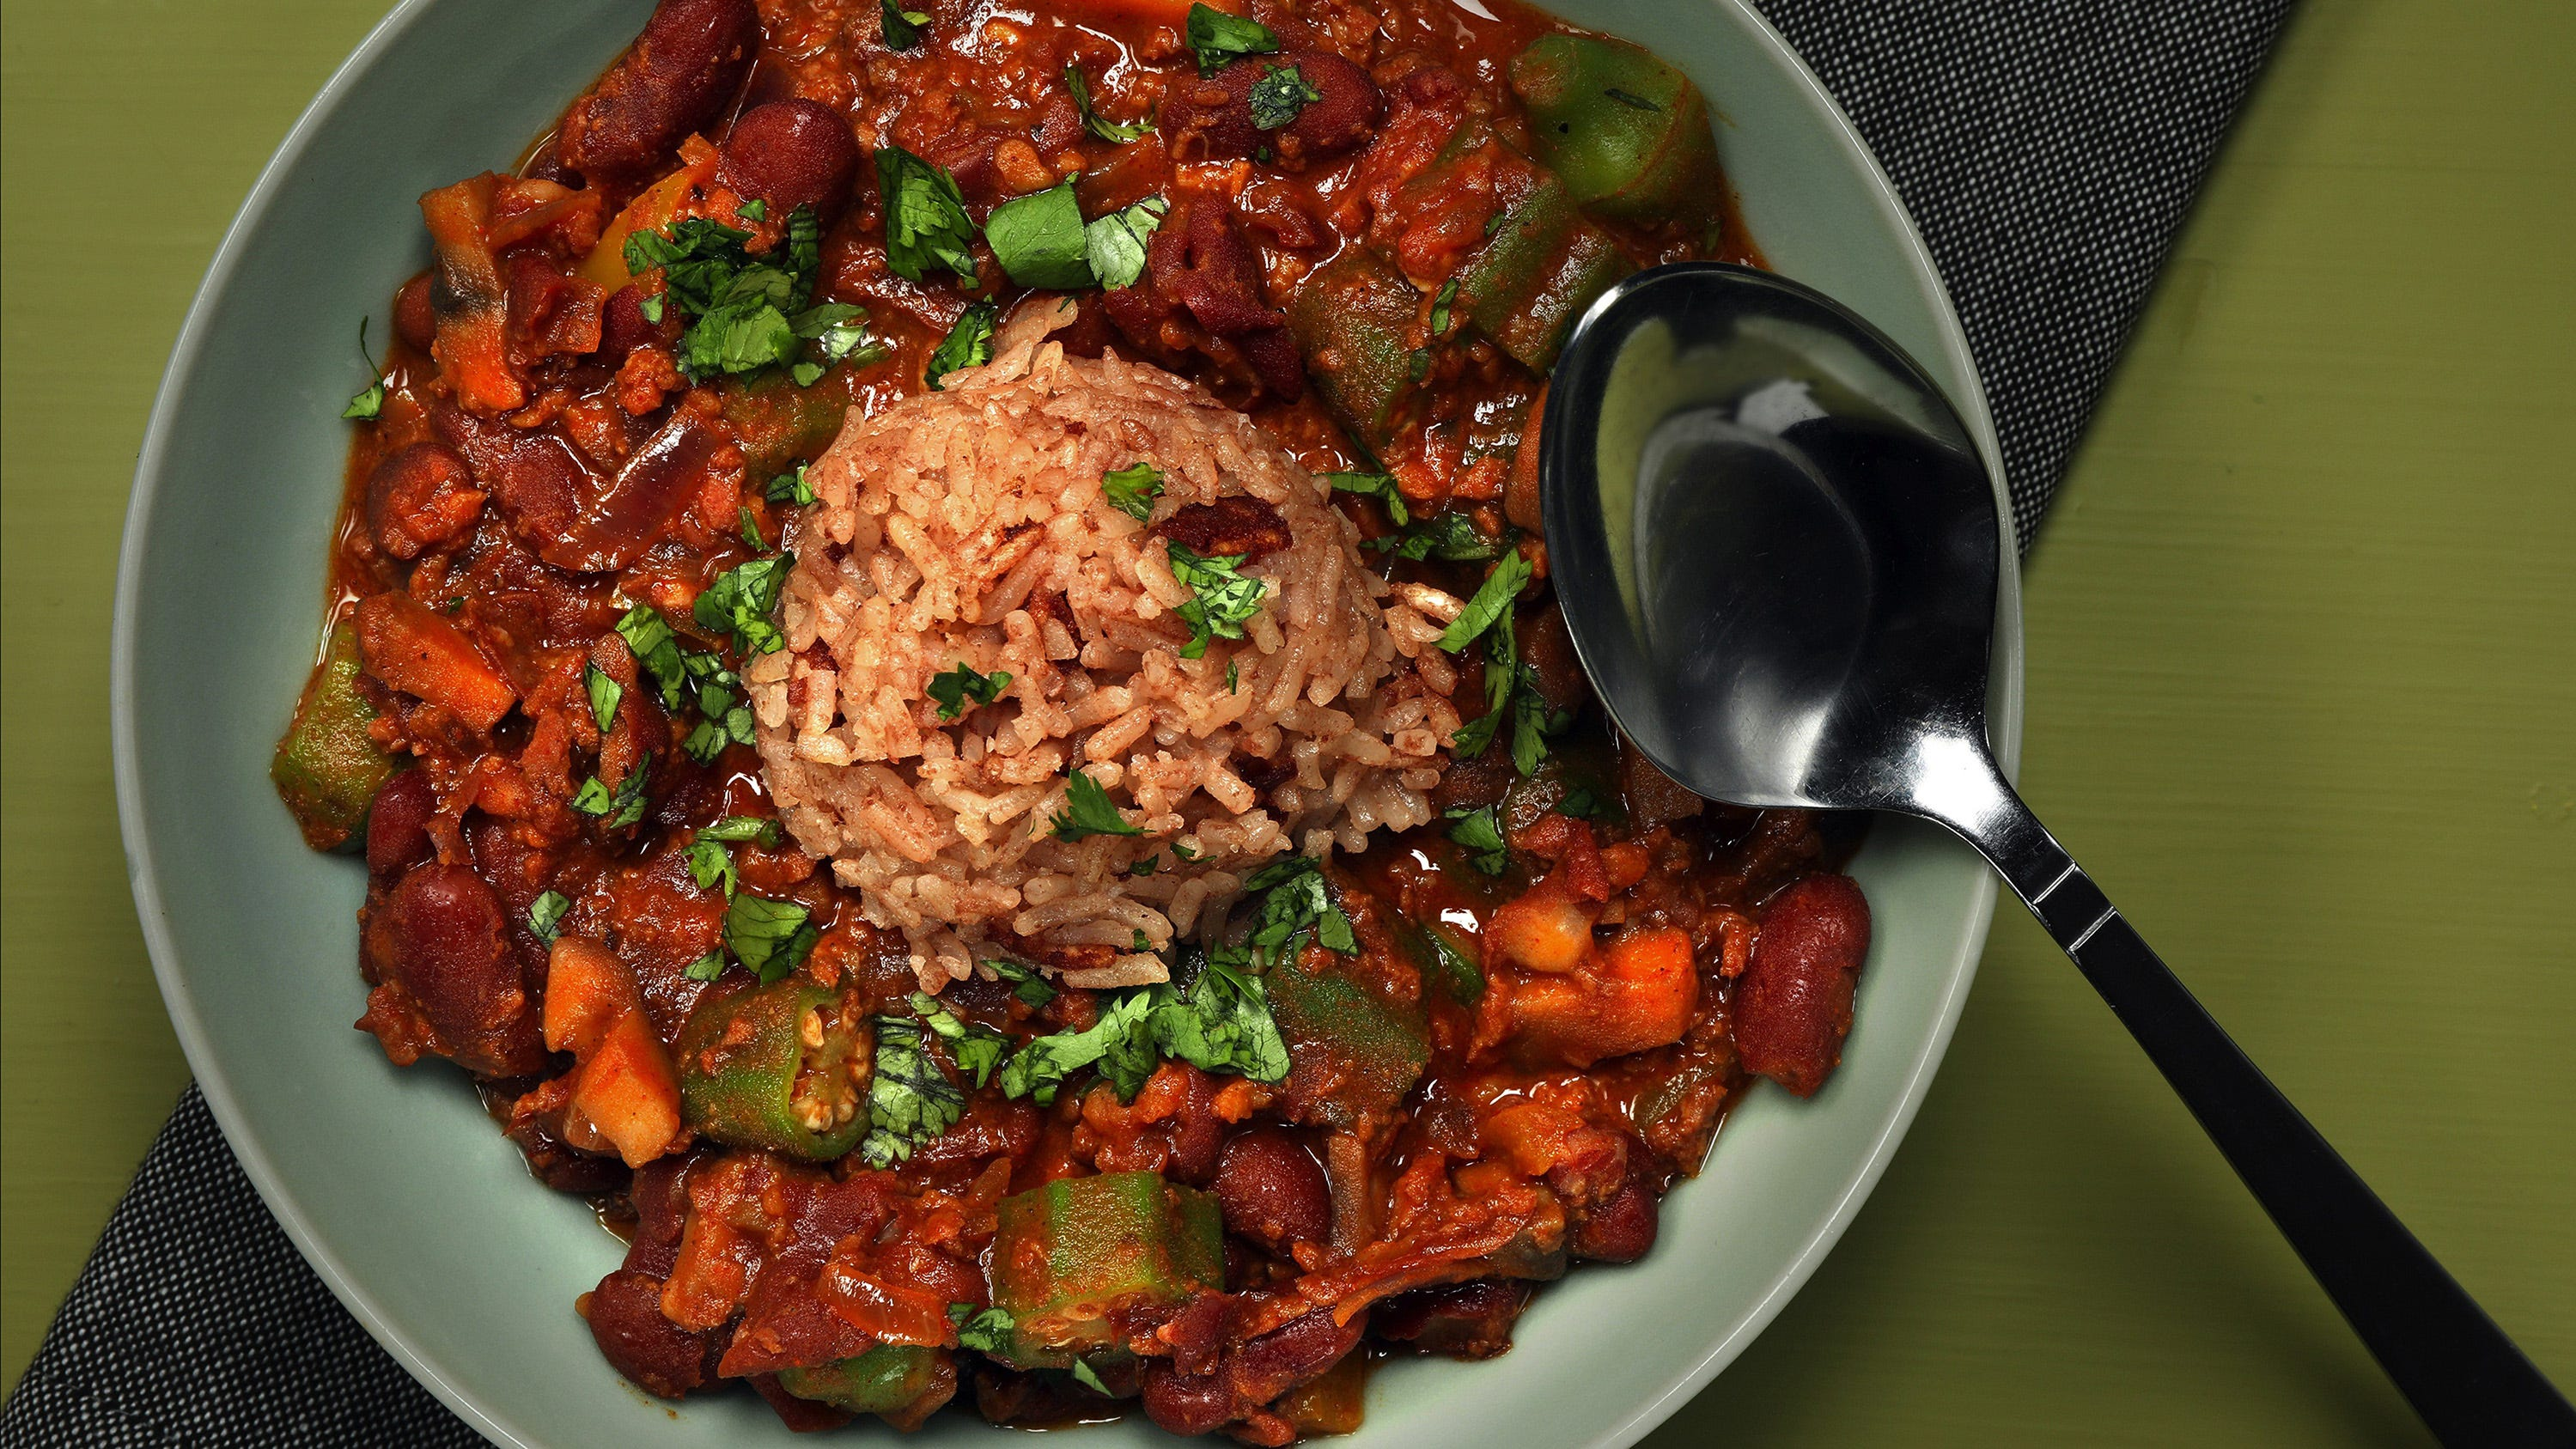 The red beans and chorizo stew tastes great topped with a scoop of red rice. Okra gives the stew additional texture. (Shannon Kinsella/food styling) (Terrence Antonio James/Chicago Tribune/TNS)